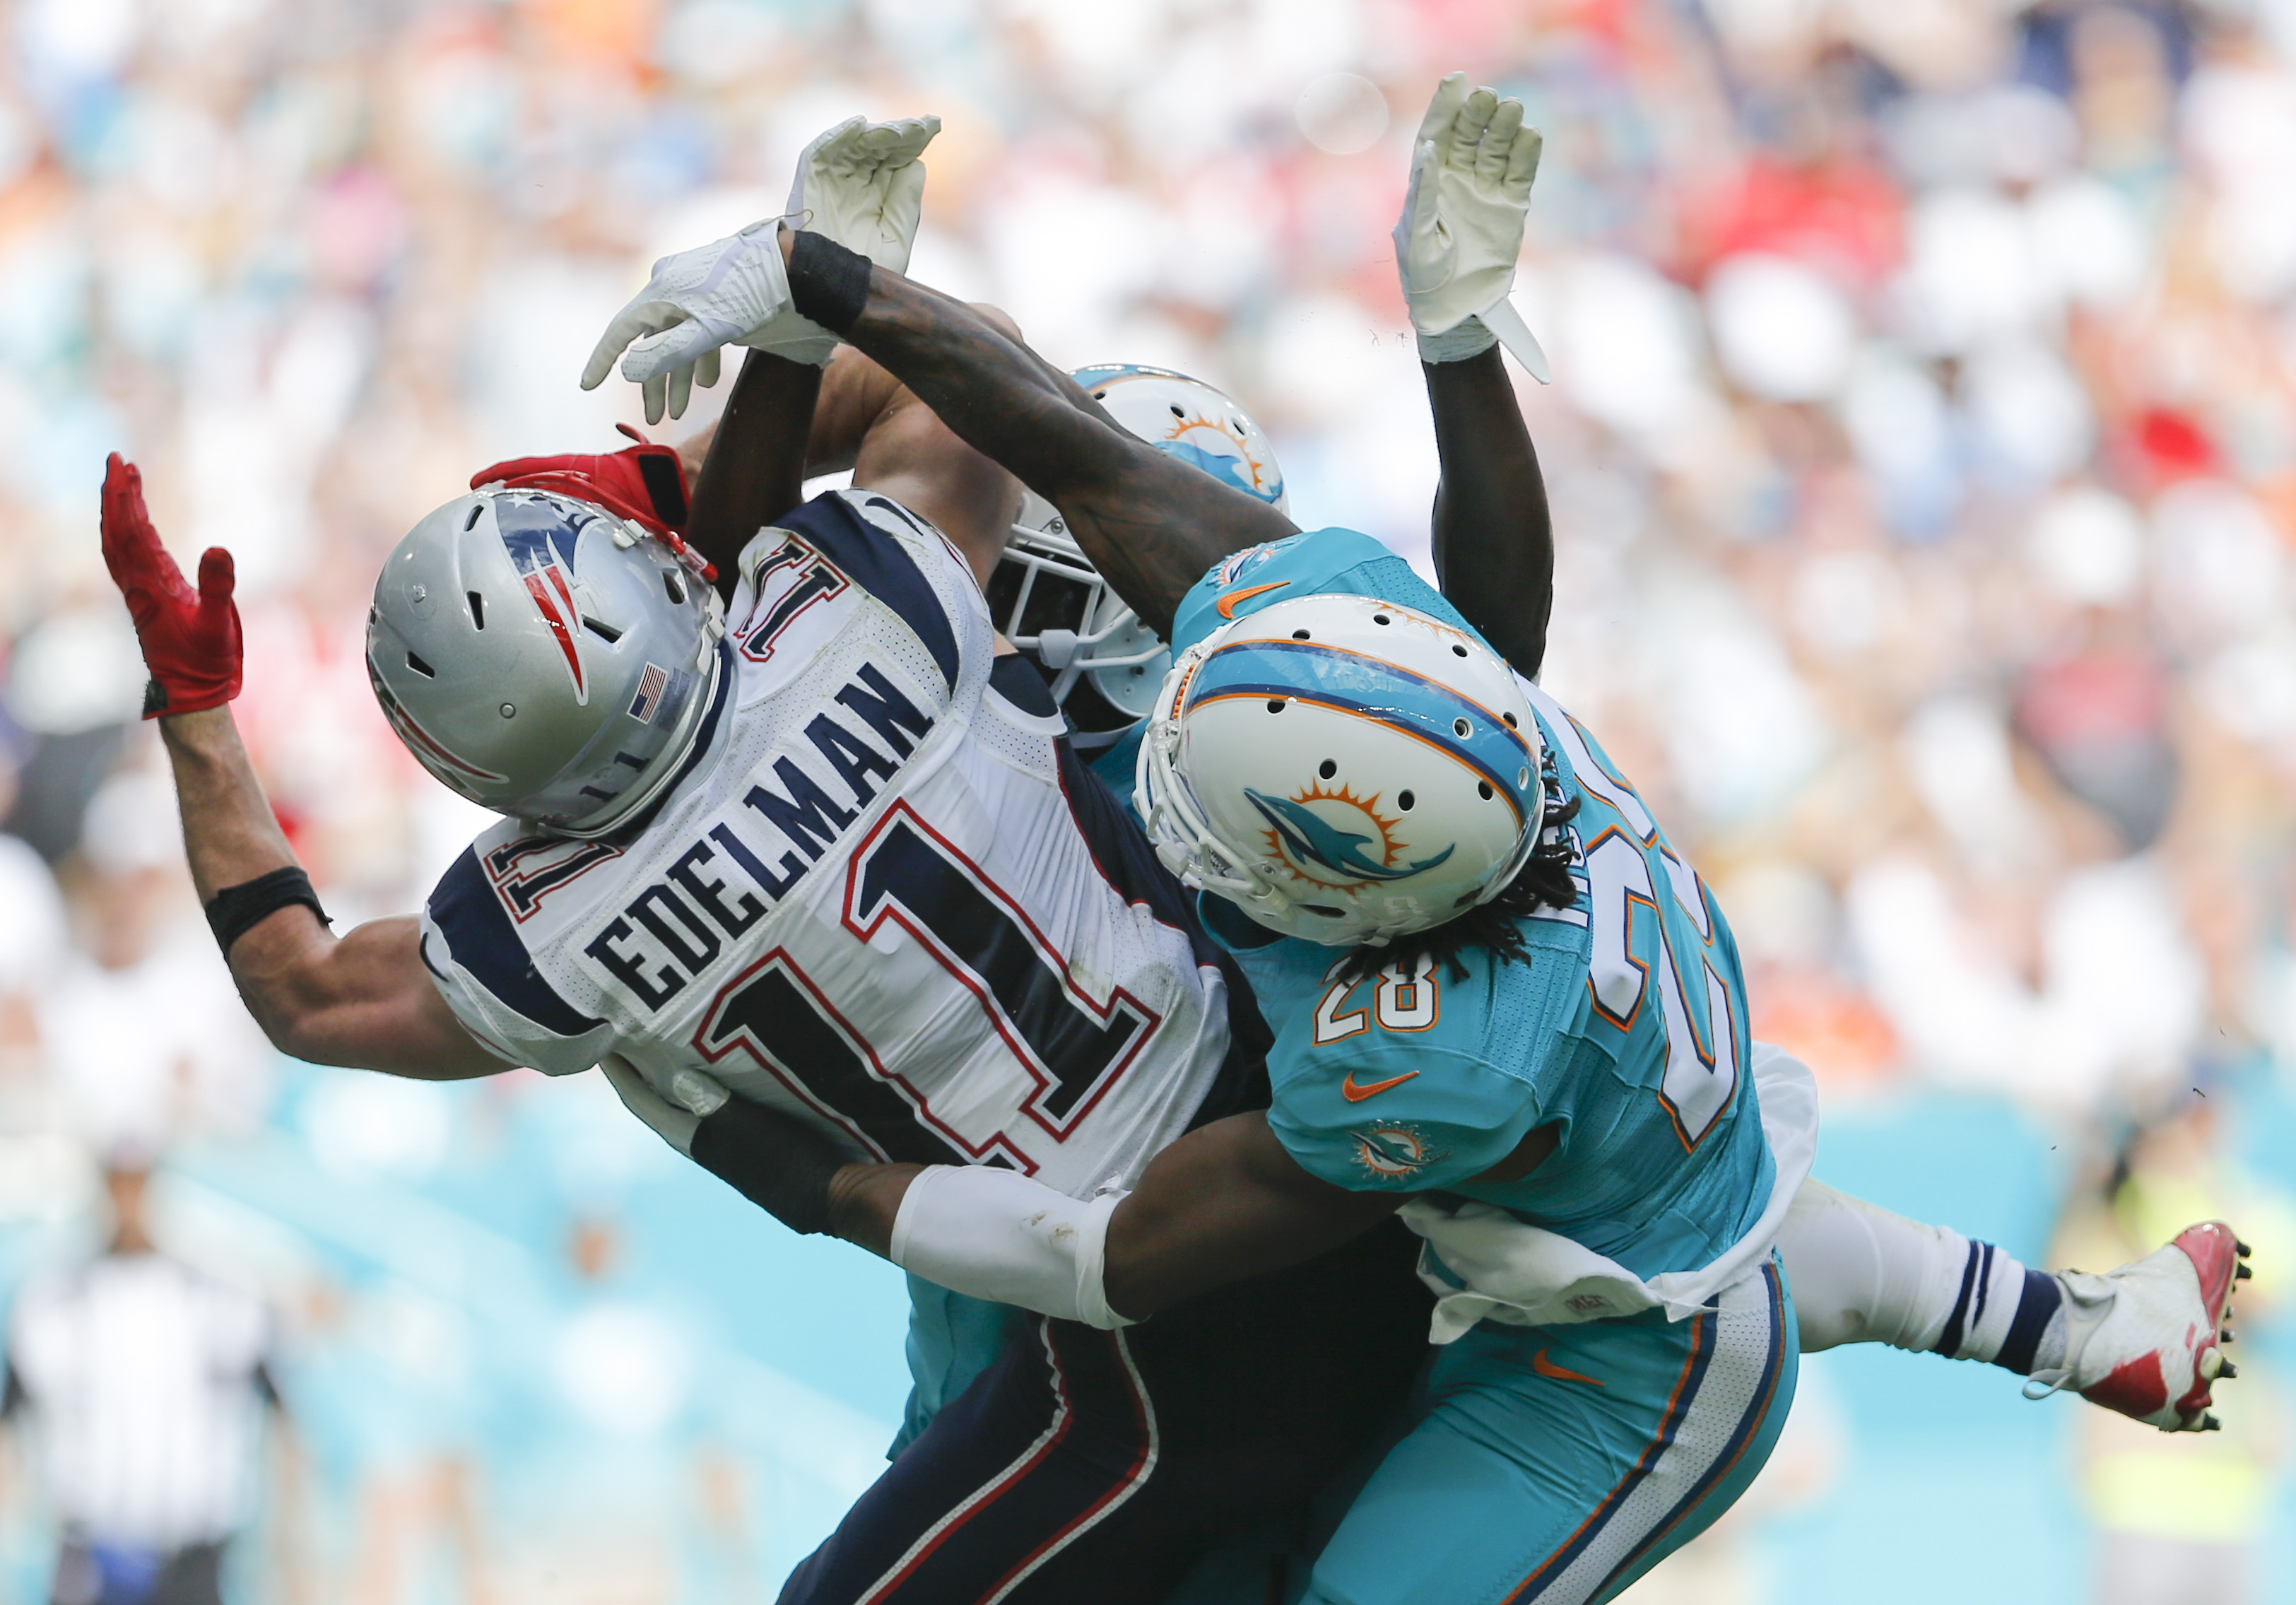 9782289-nfl-new-england-patriots-at-miami-dolphins